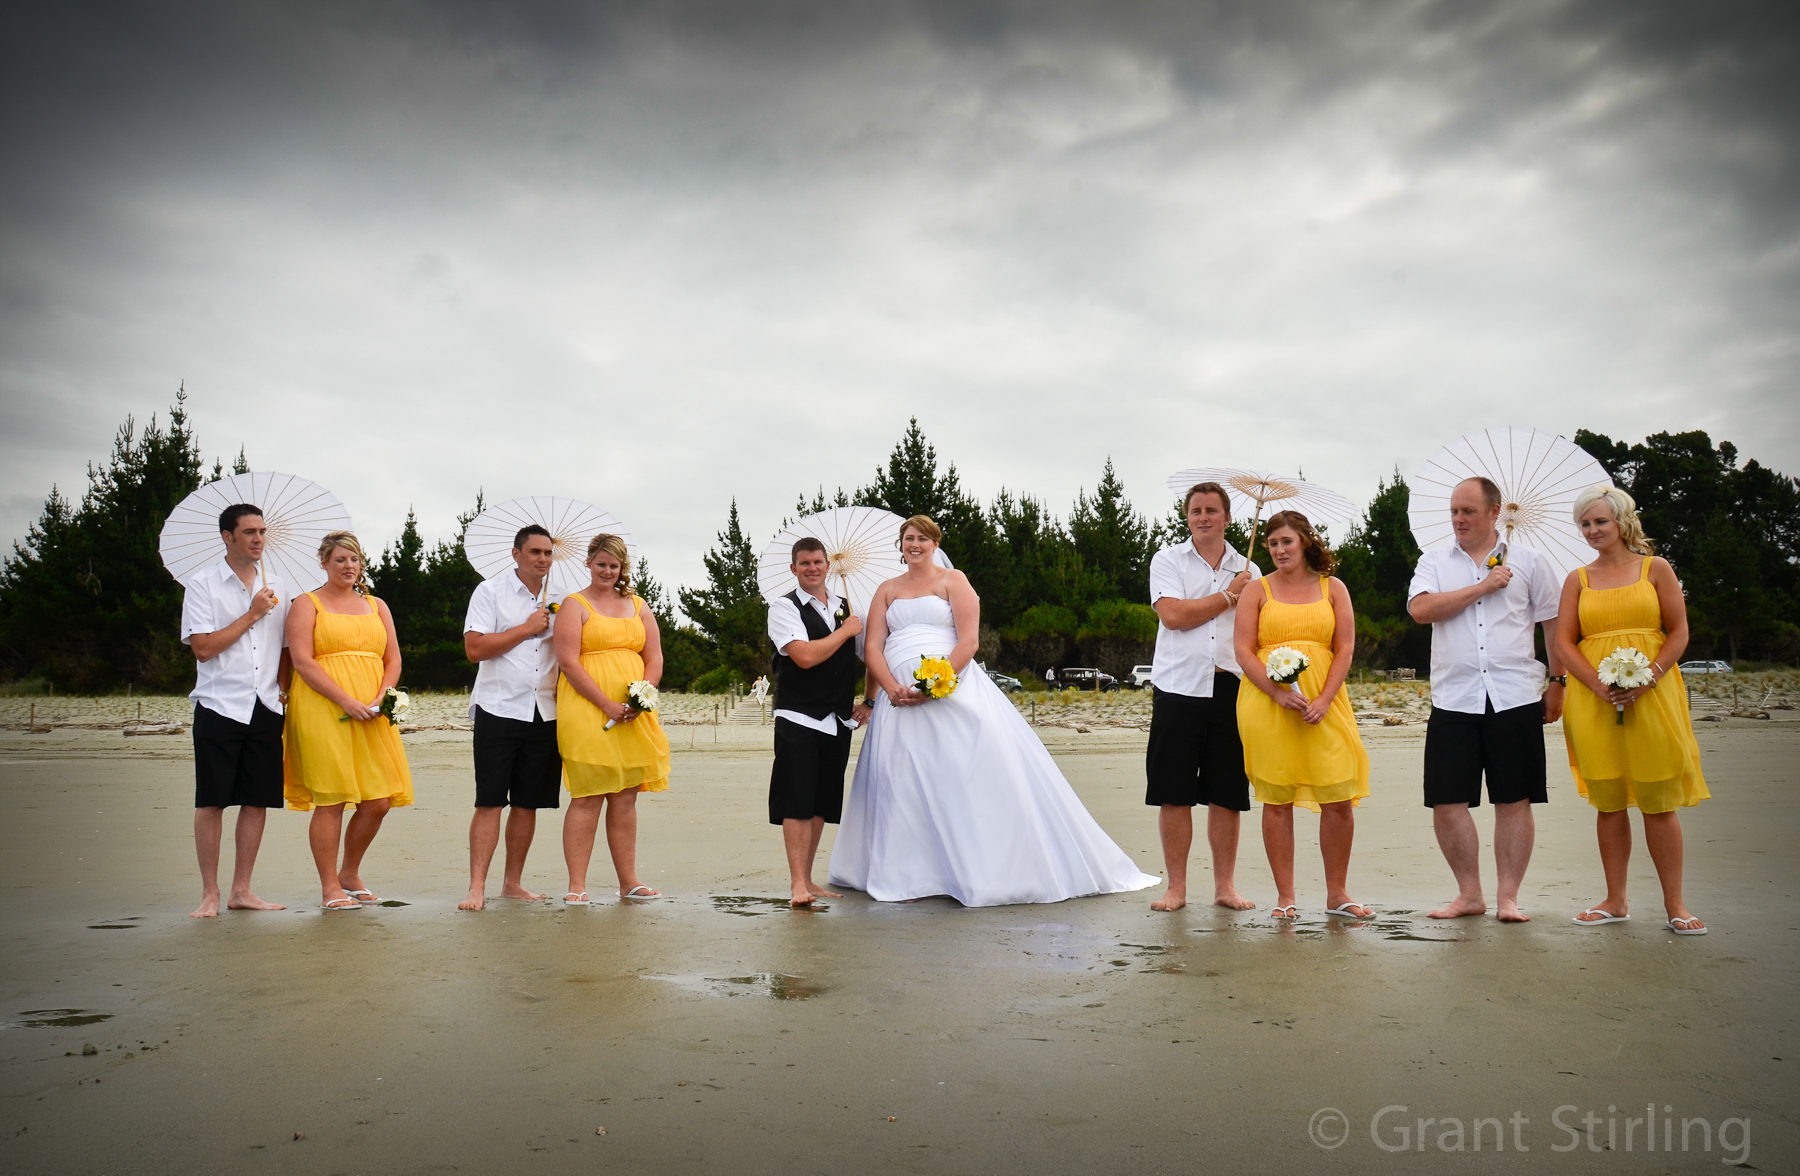 Wedding photography by Grant Stirling